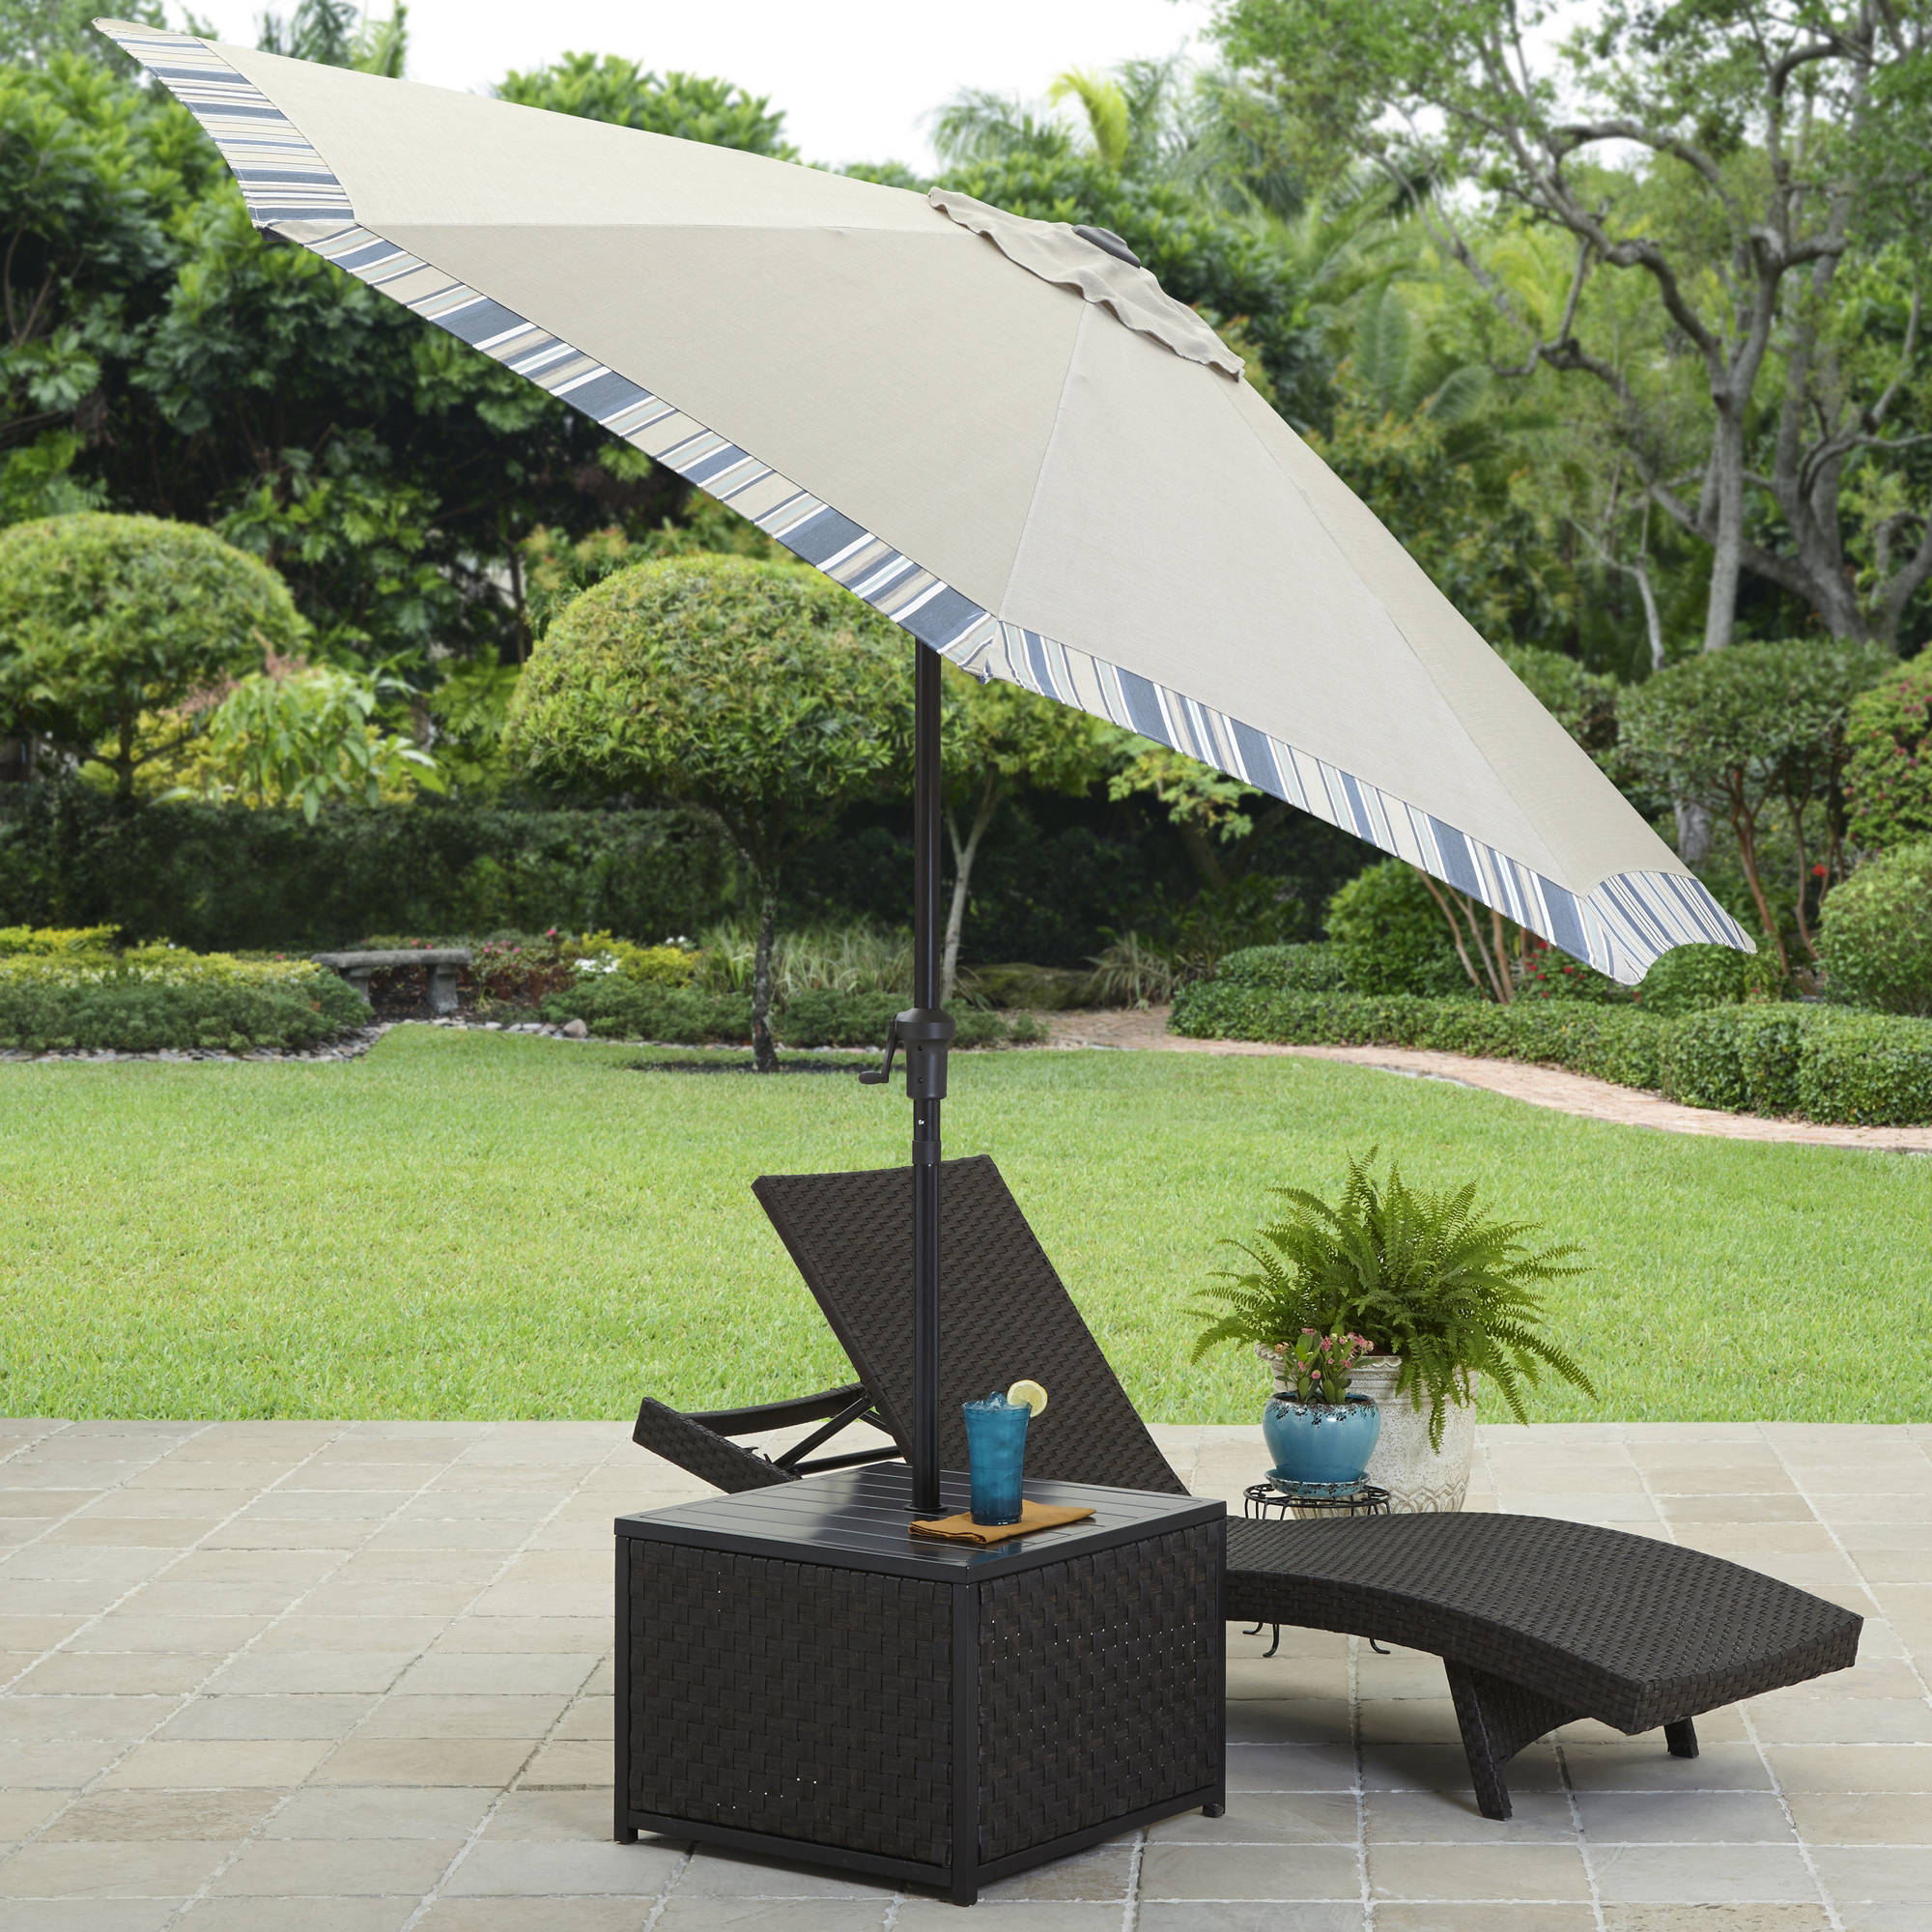 Tips For Outdoor Table: